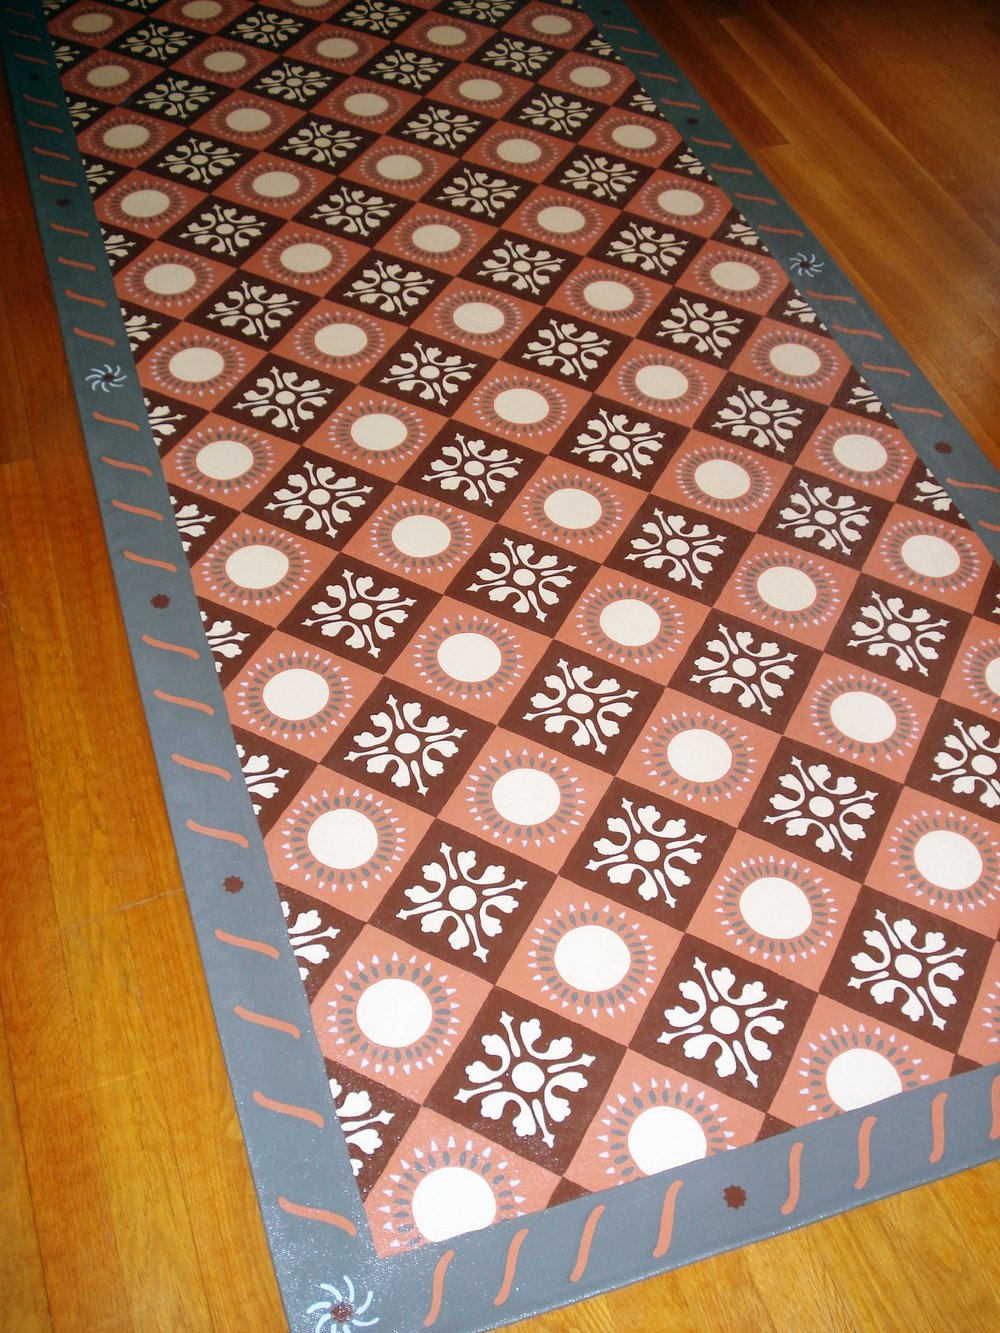 historical_3_fullsize.jpg floorcloth.jpg